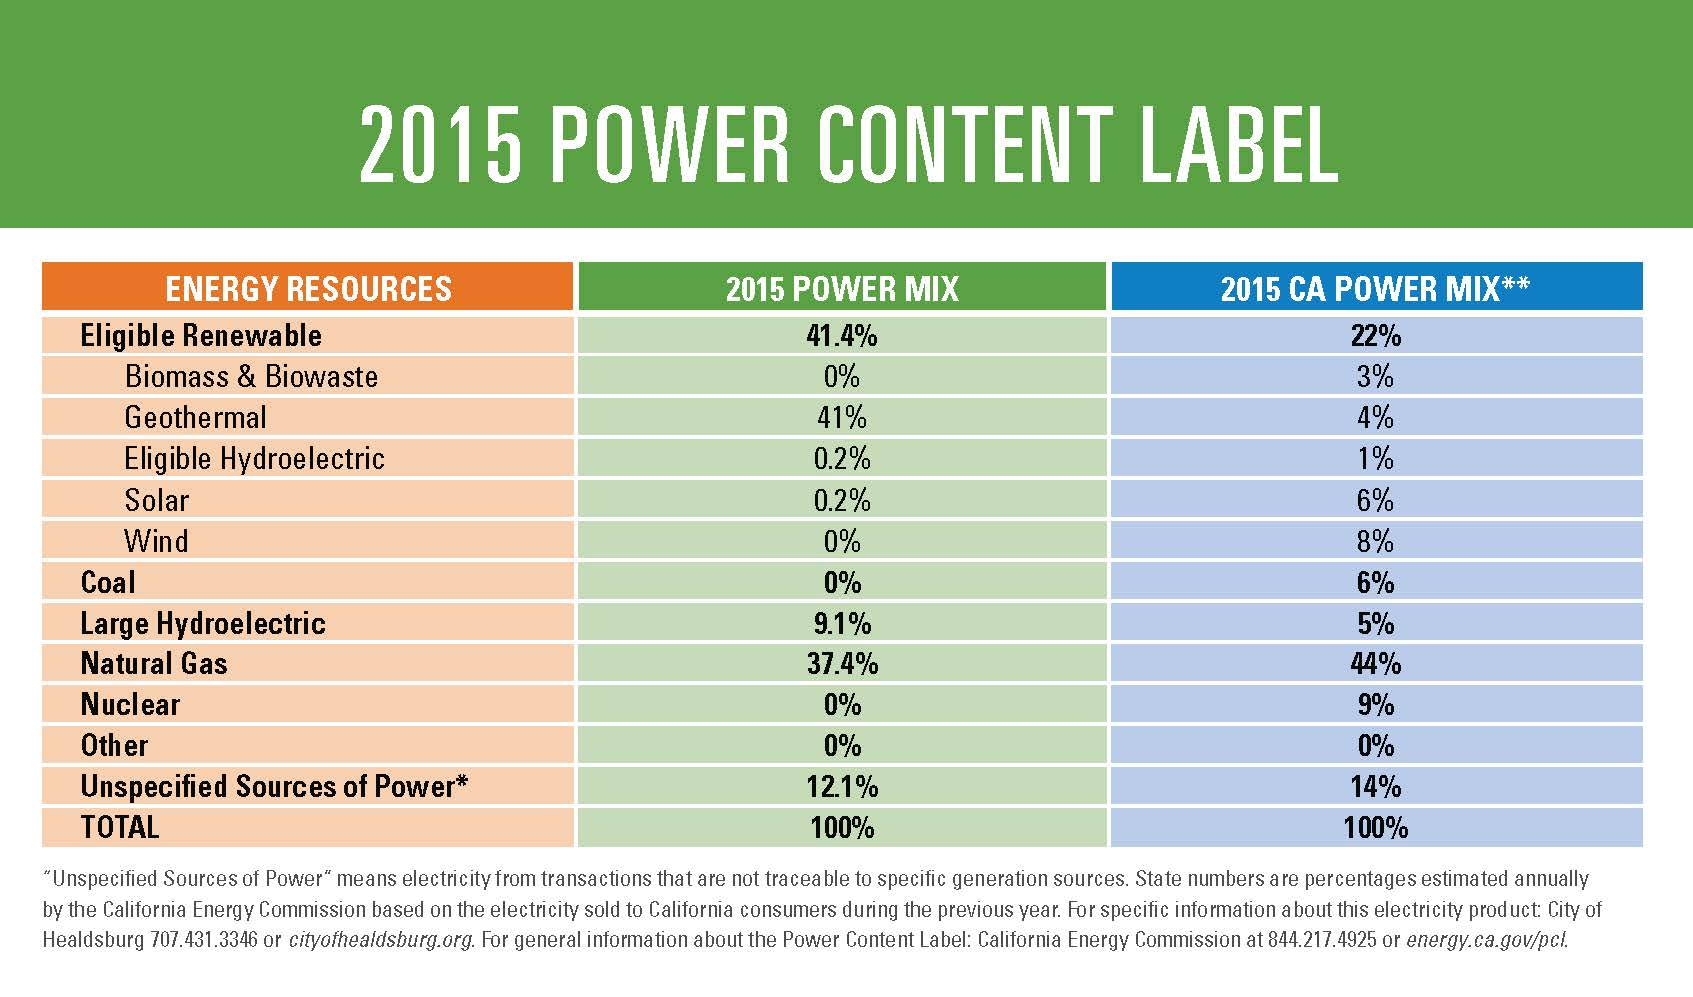 2015 Power Content Label